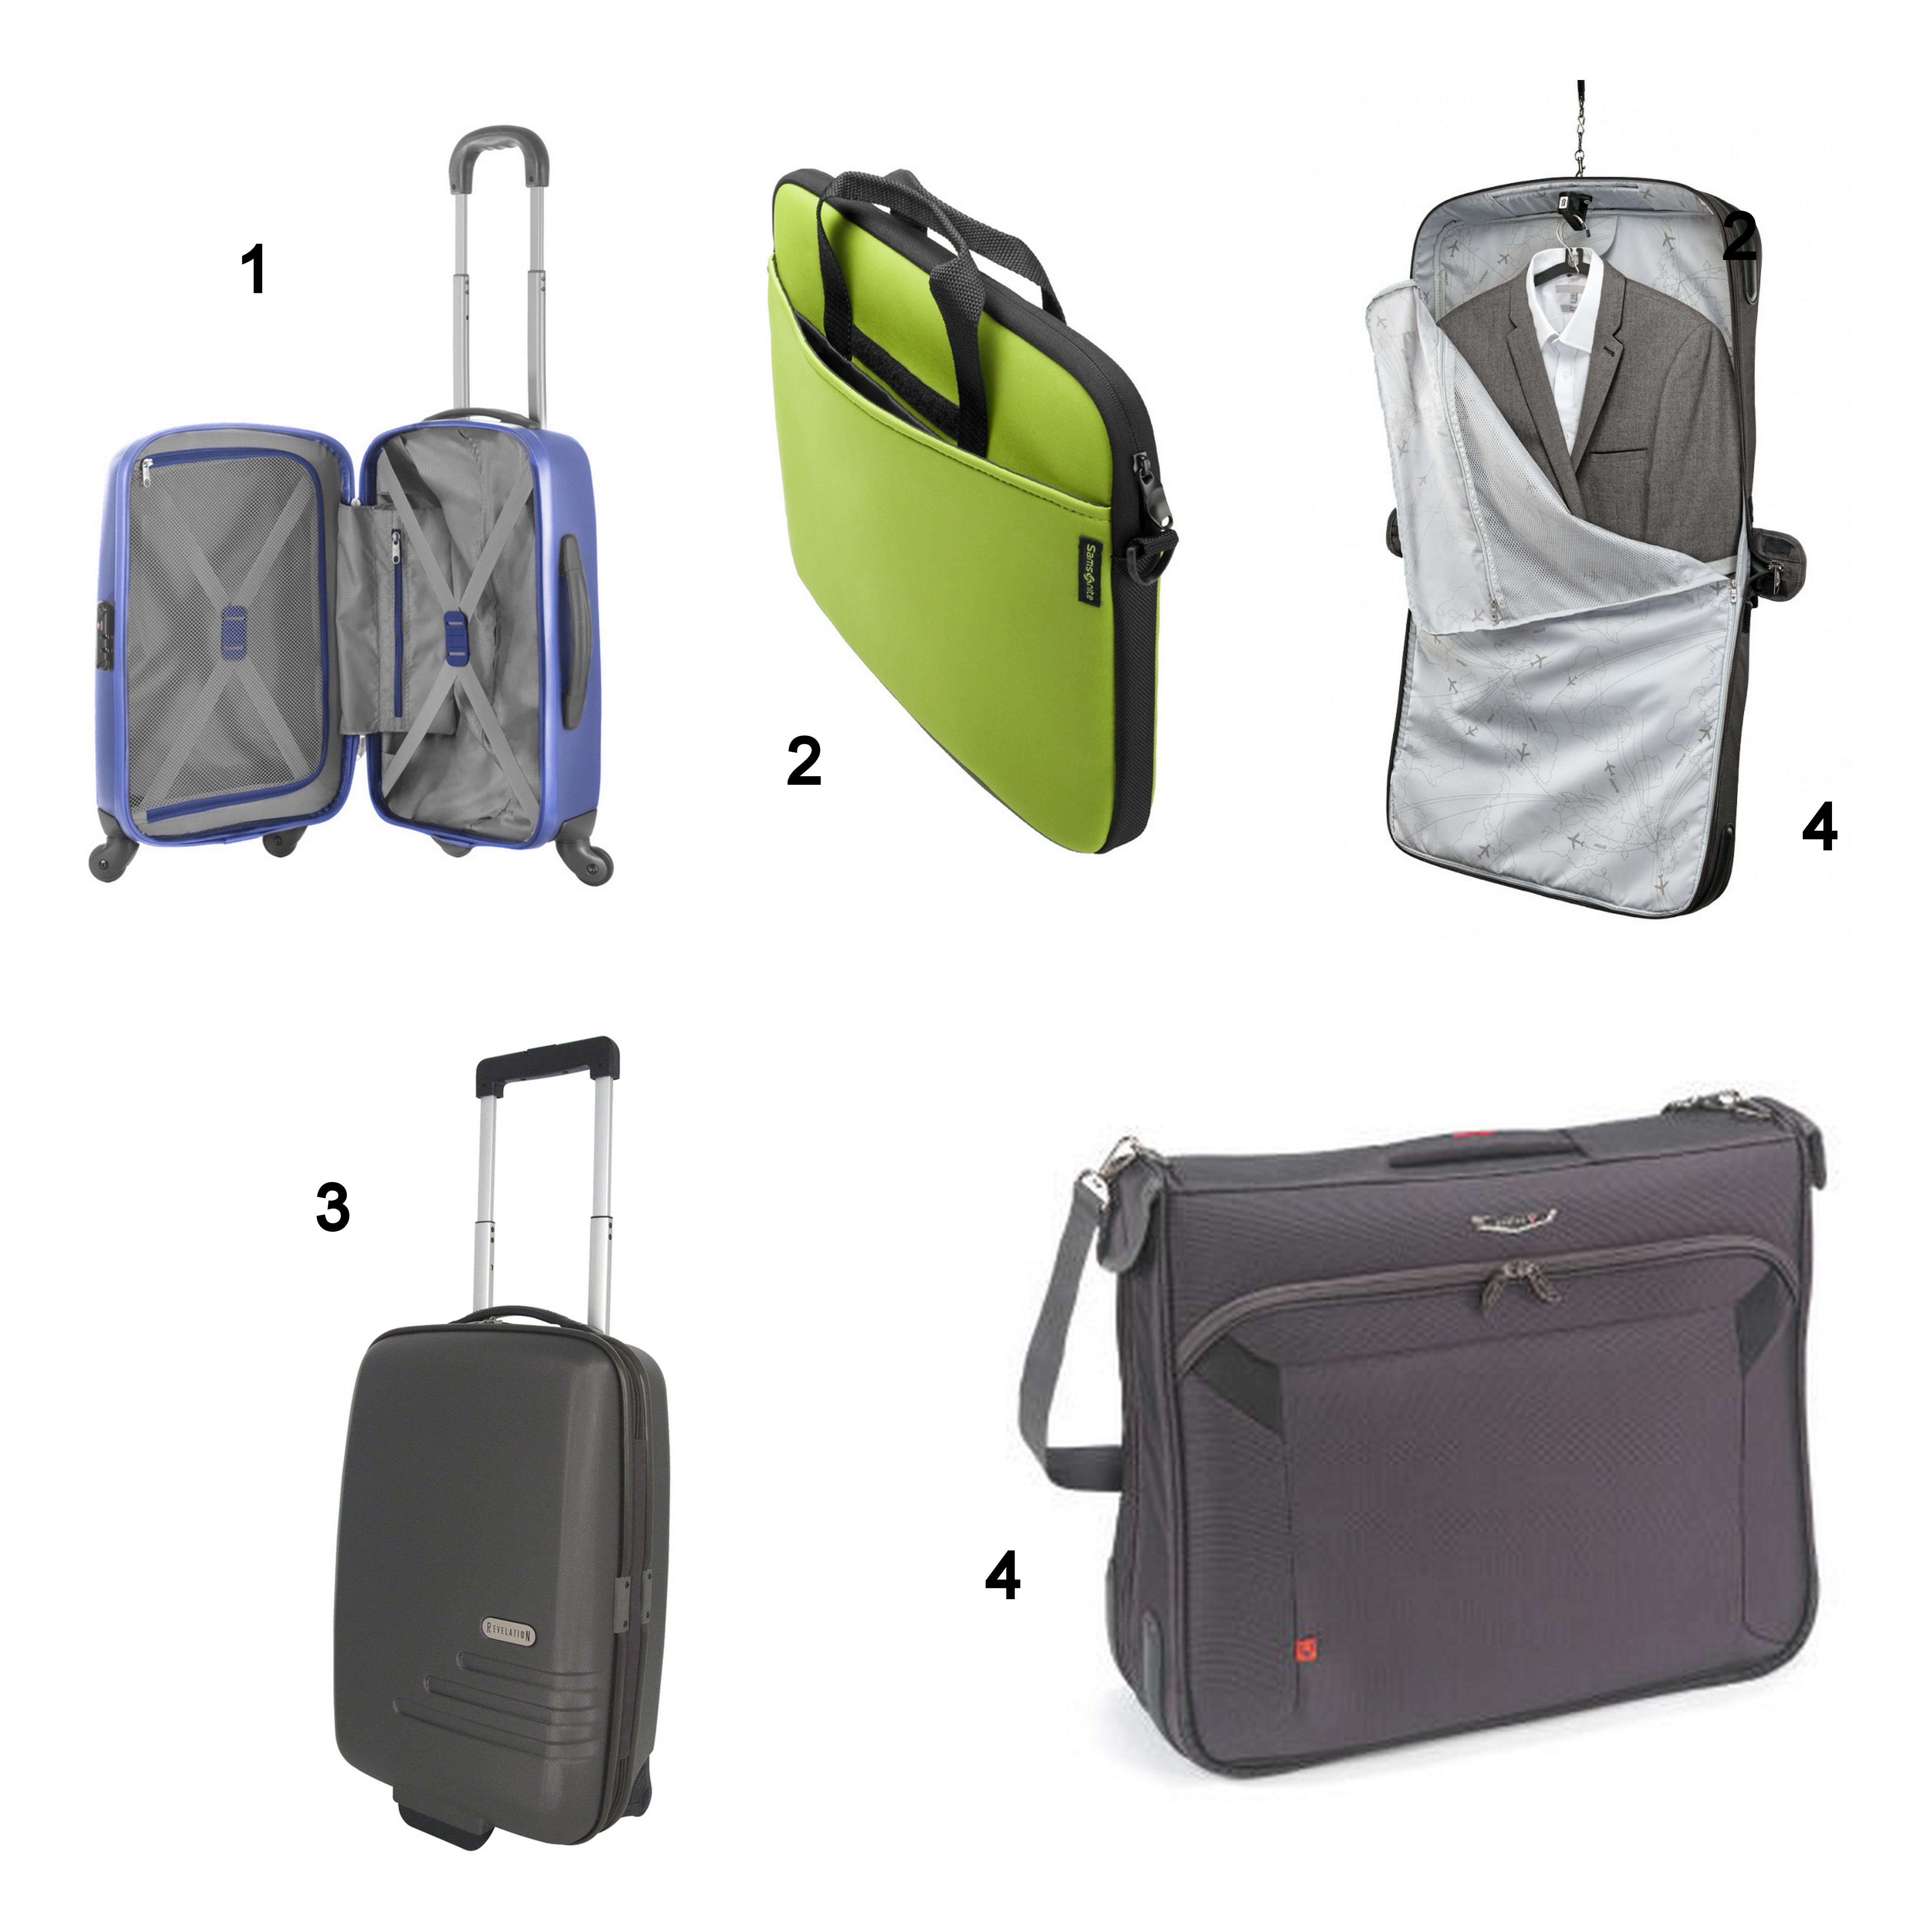 Collage of Business Luggage, including Antler cases, Samsonite cases, laptop cases and garment bags